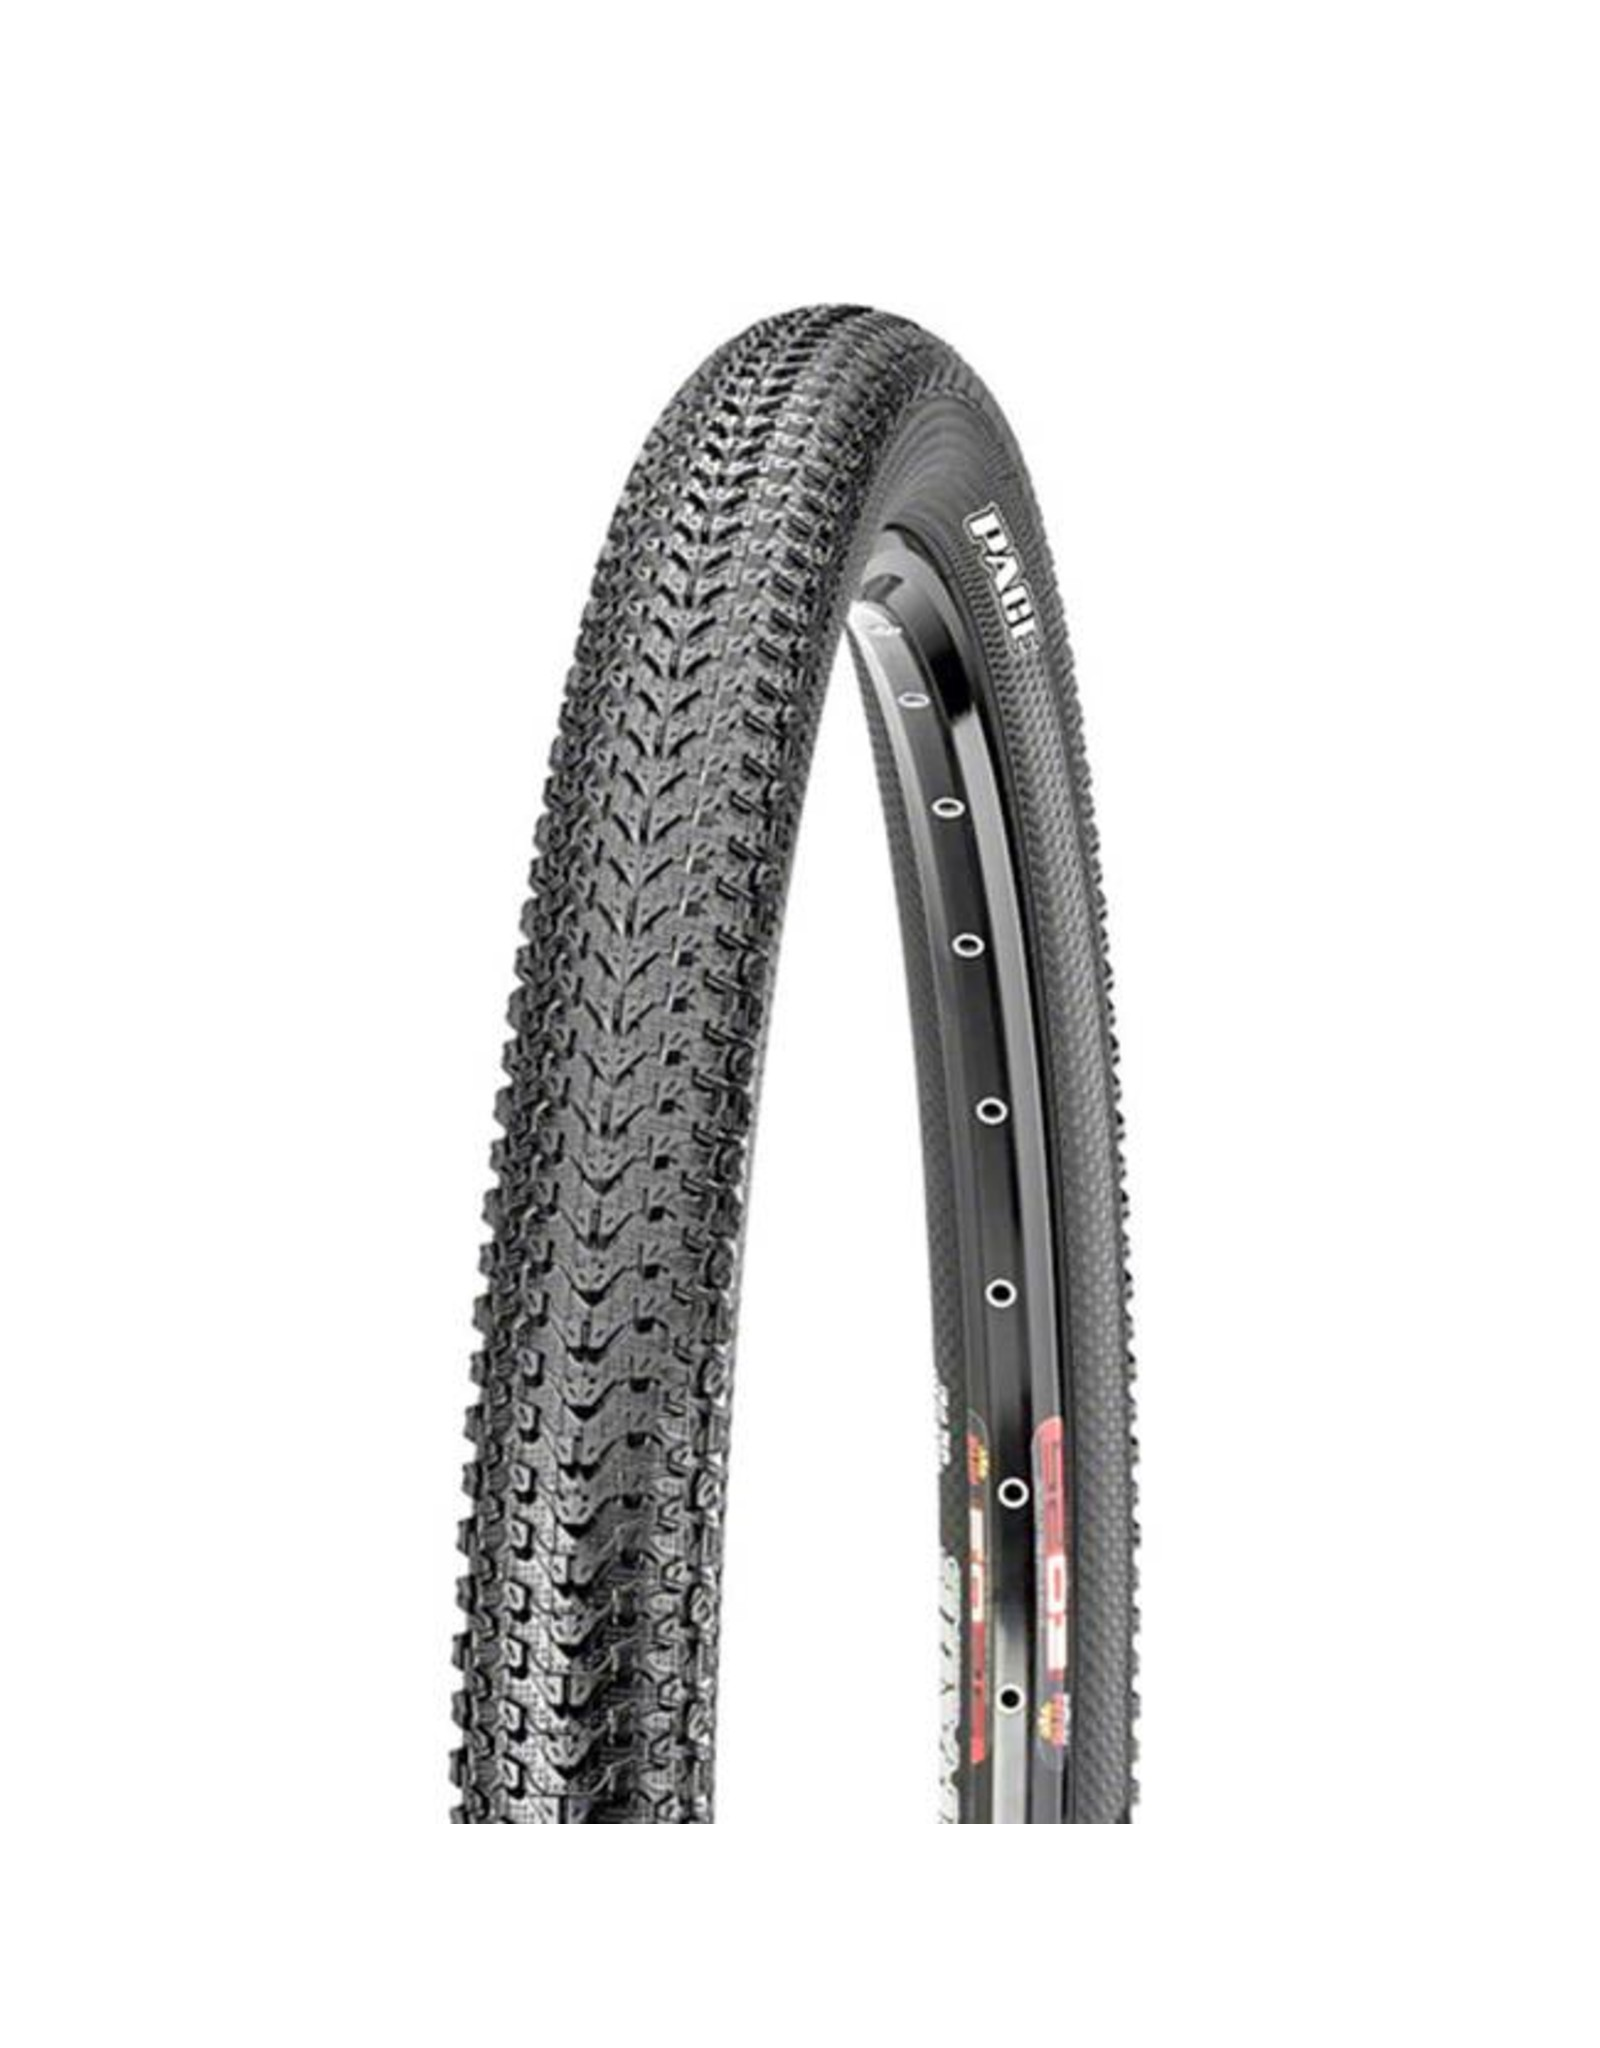 "Maxxis Maxxis Pace Tire: 29 x 2.10"", Folding, 60tpi, Dual Compound, Tubeless Ready, Black"